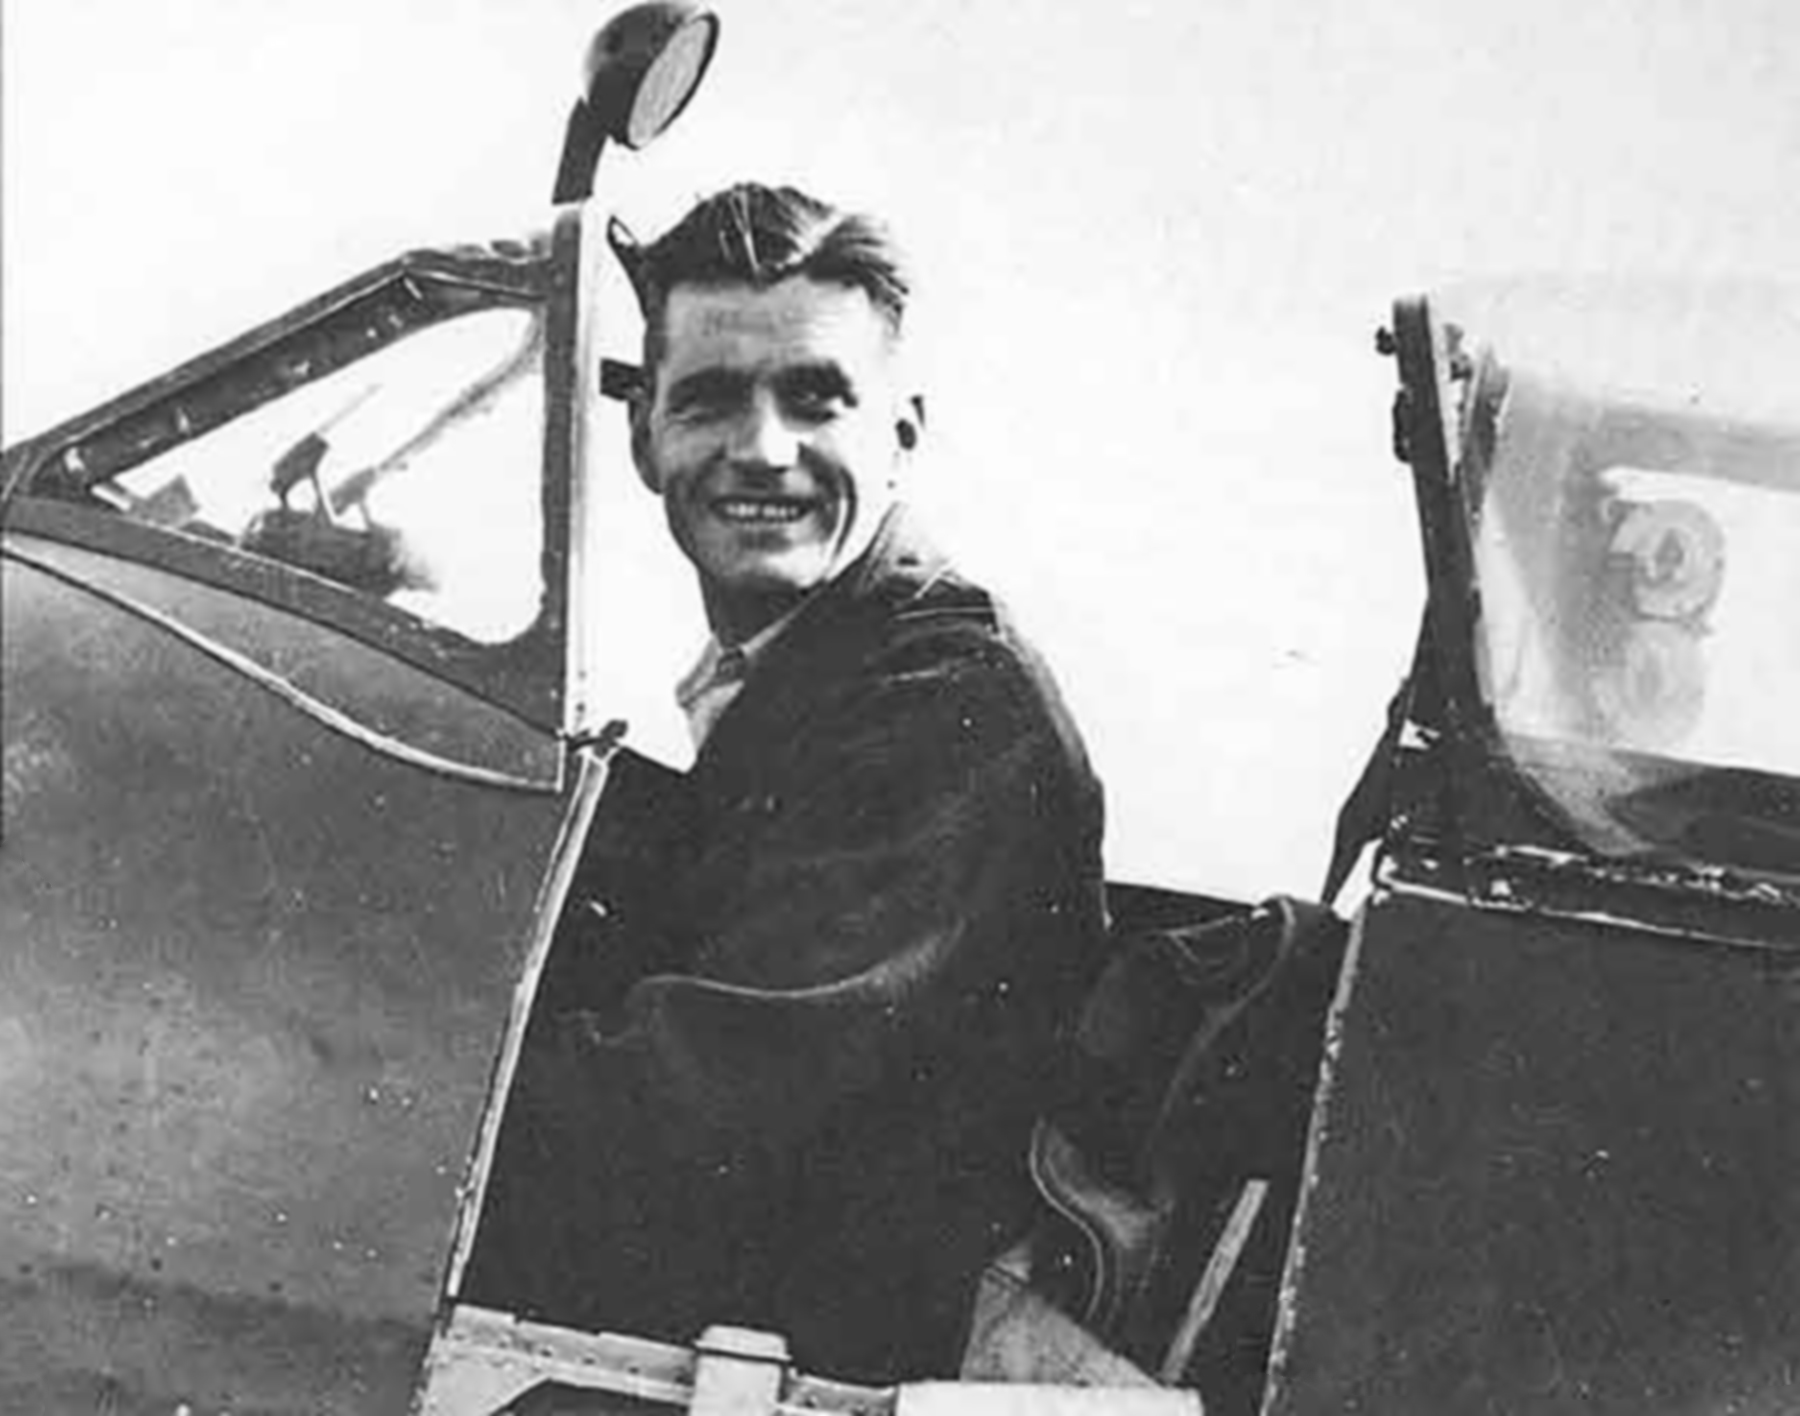 Aircrew RAF Ace JE Johnnie Johnson in his Spitfire JEJ 01